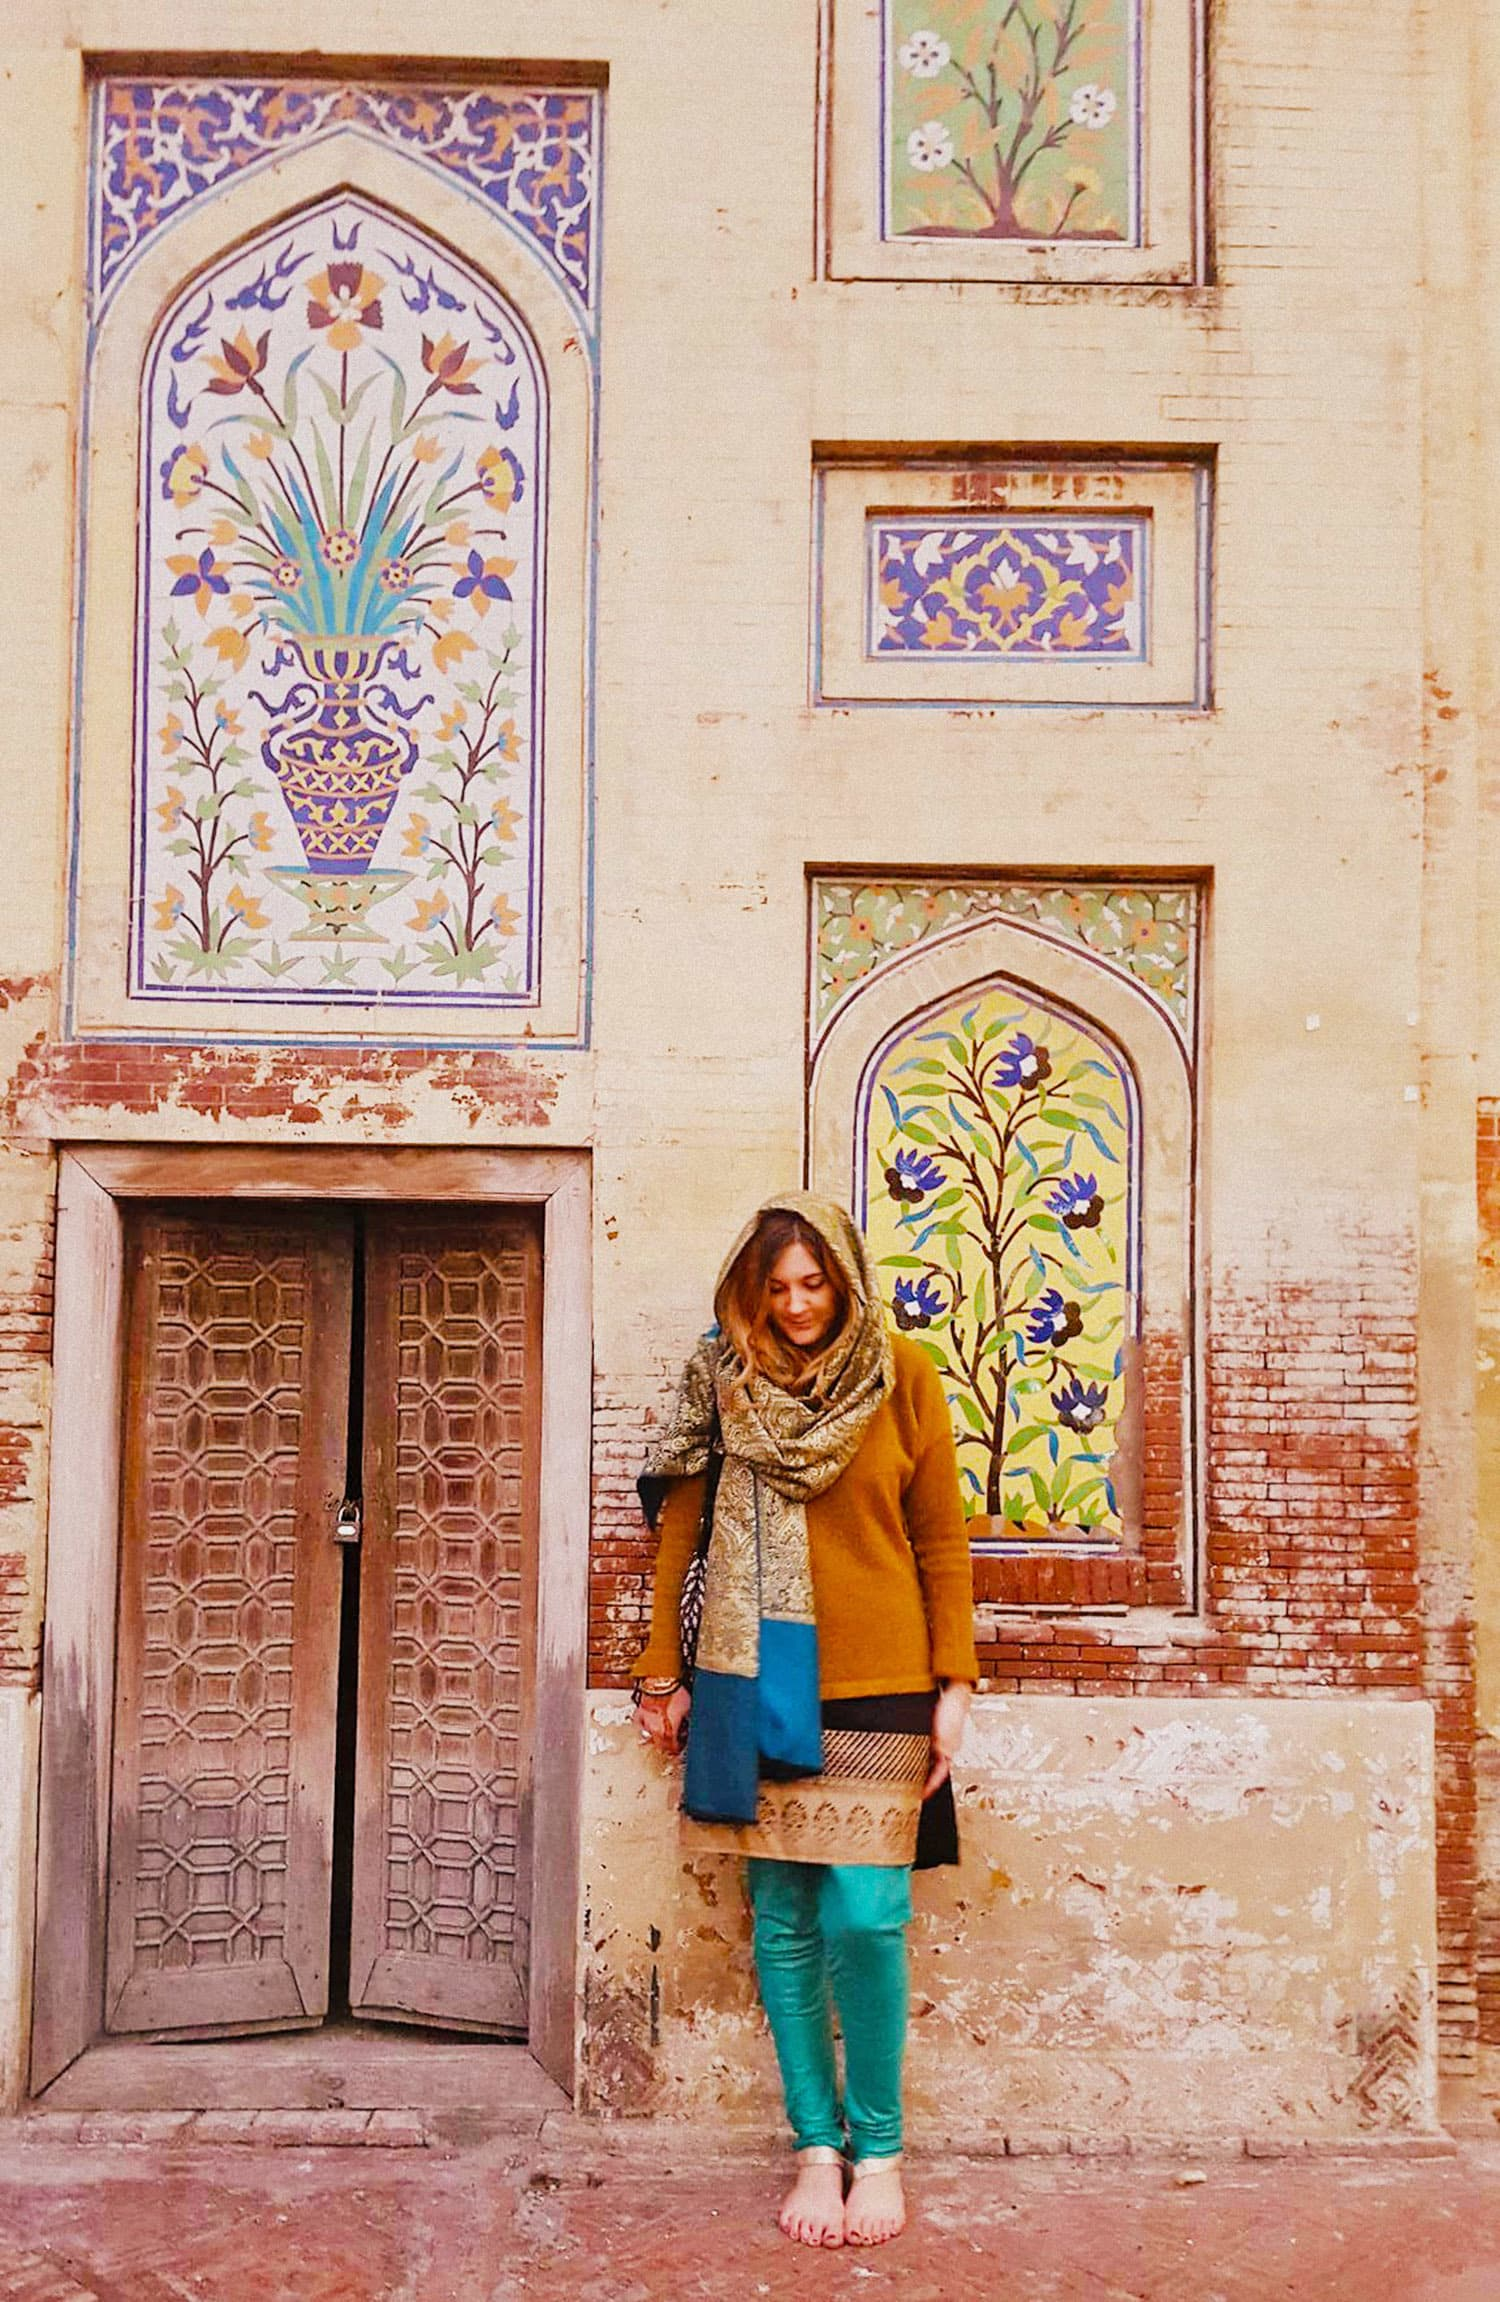 I loved the colourful tiles at the Wazir Khan mosque.